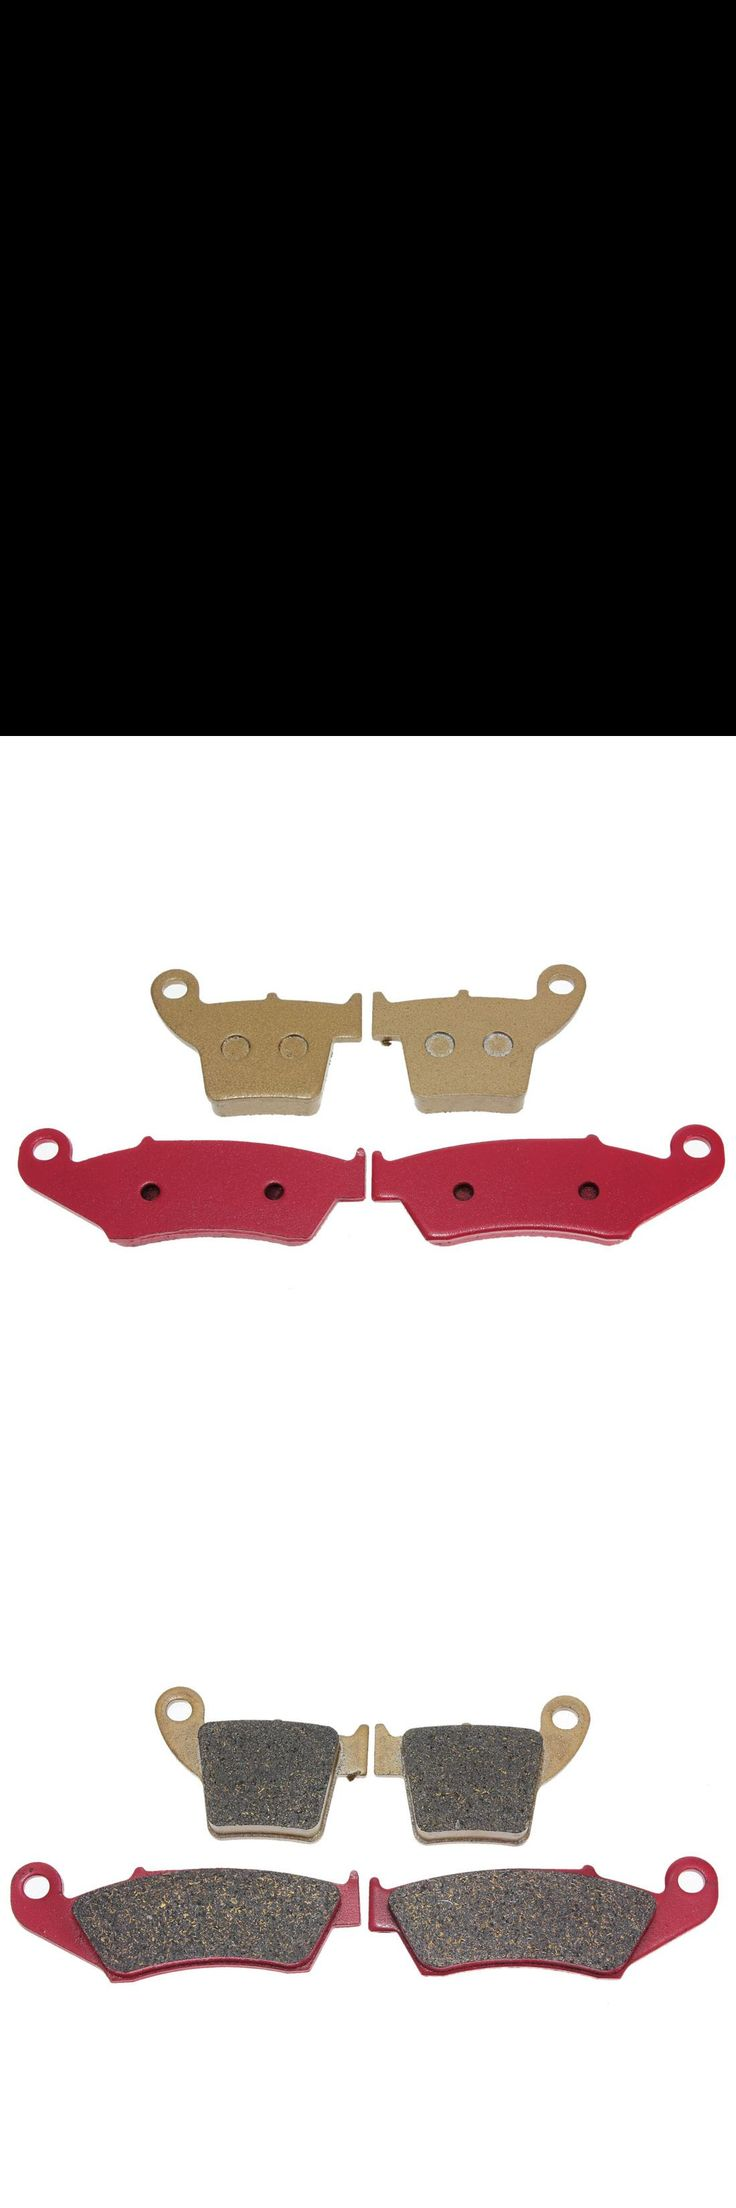 [Visit to Buy] Front Rear Brake Disc Pads For HONDA CR 125R 250 R 02-07 CRF 250R/X 450R/X 2002-2009 #Advertisement